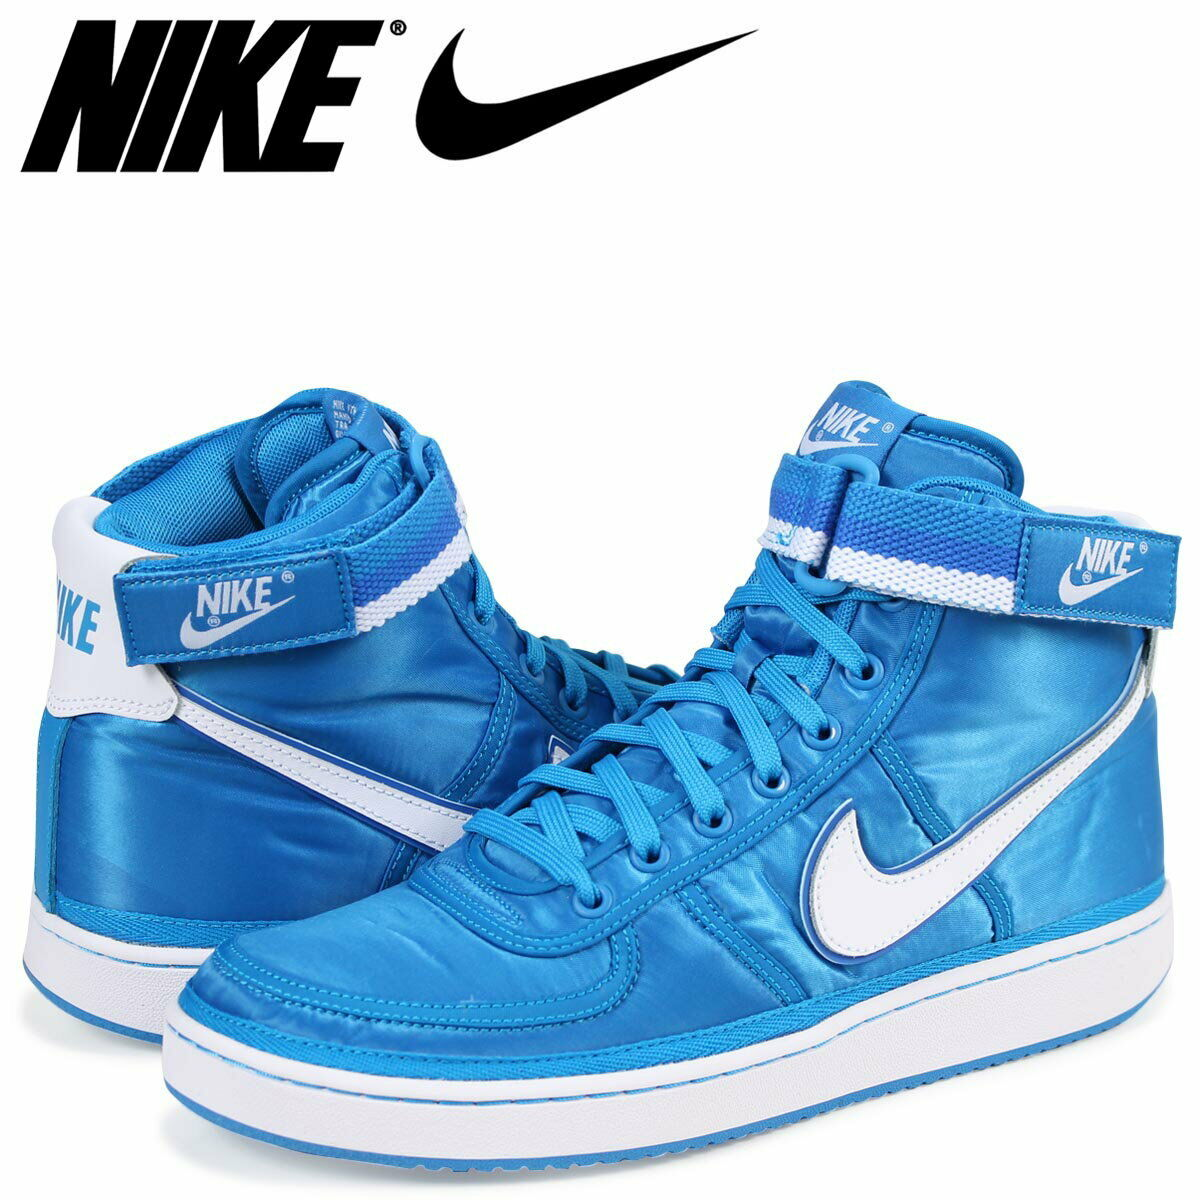 Nike Vandal High Supreme Men's Lifestyle Sneaker Trainers Boots shoes